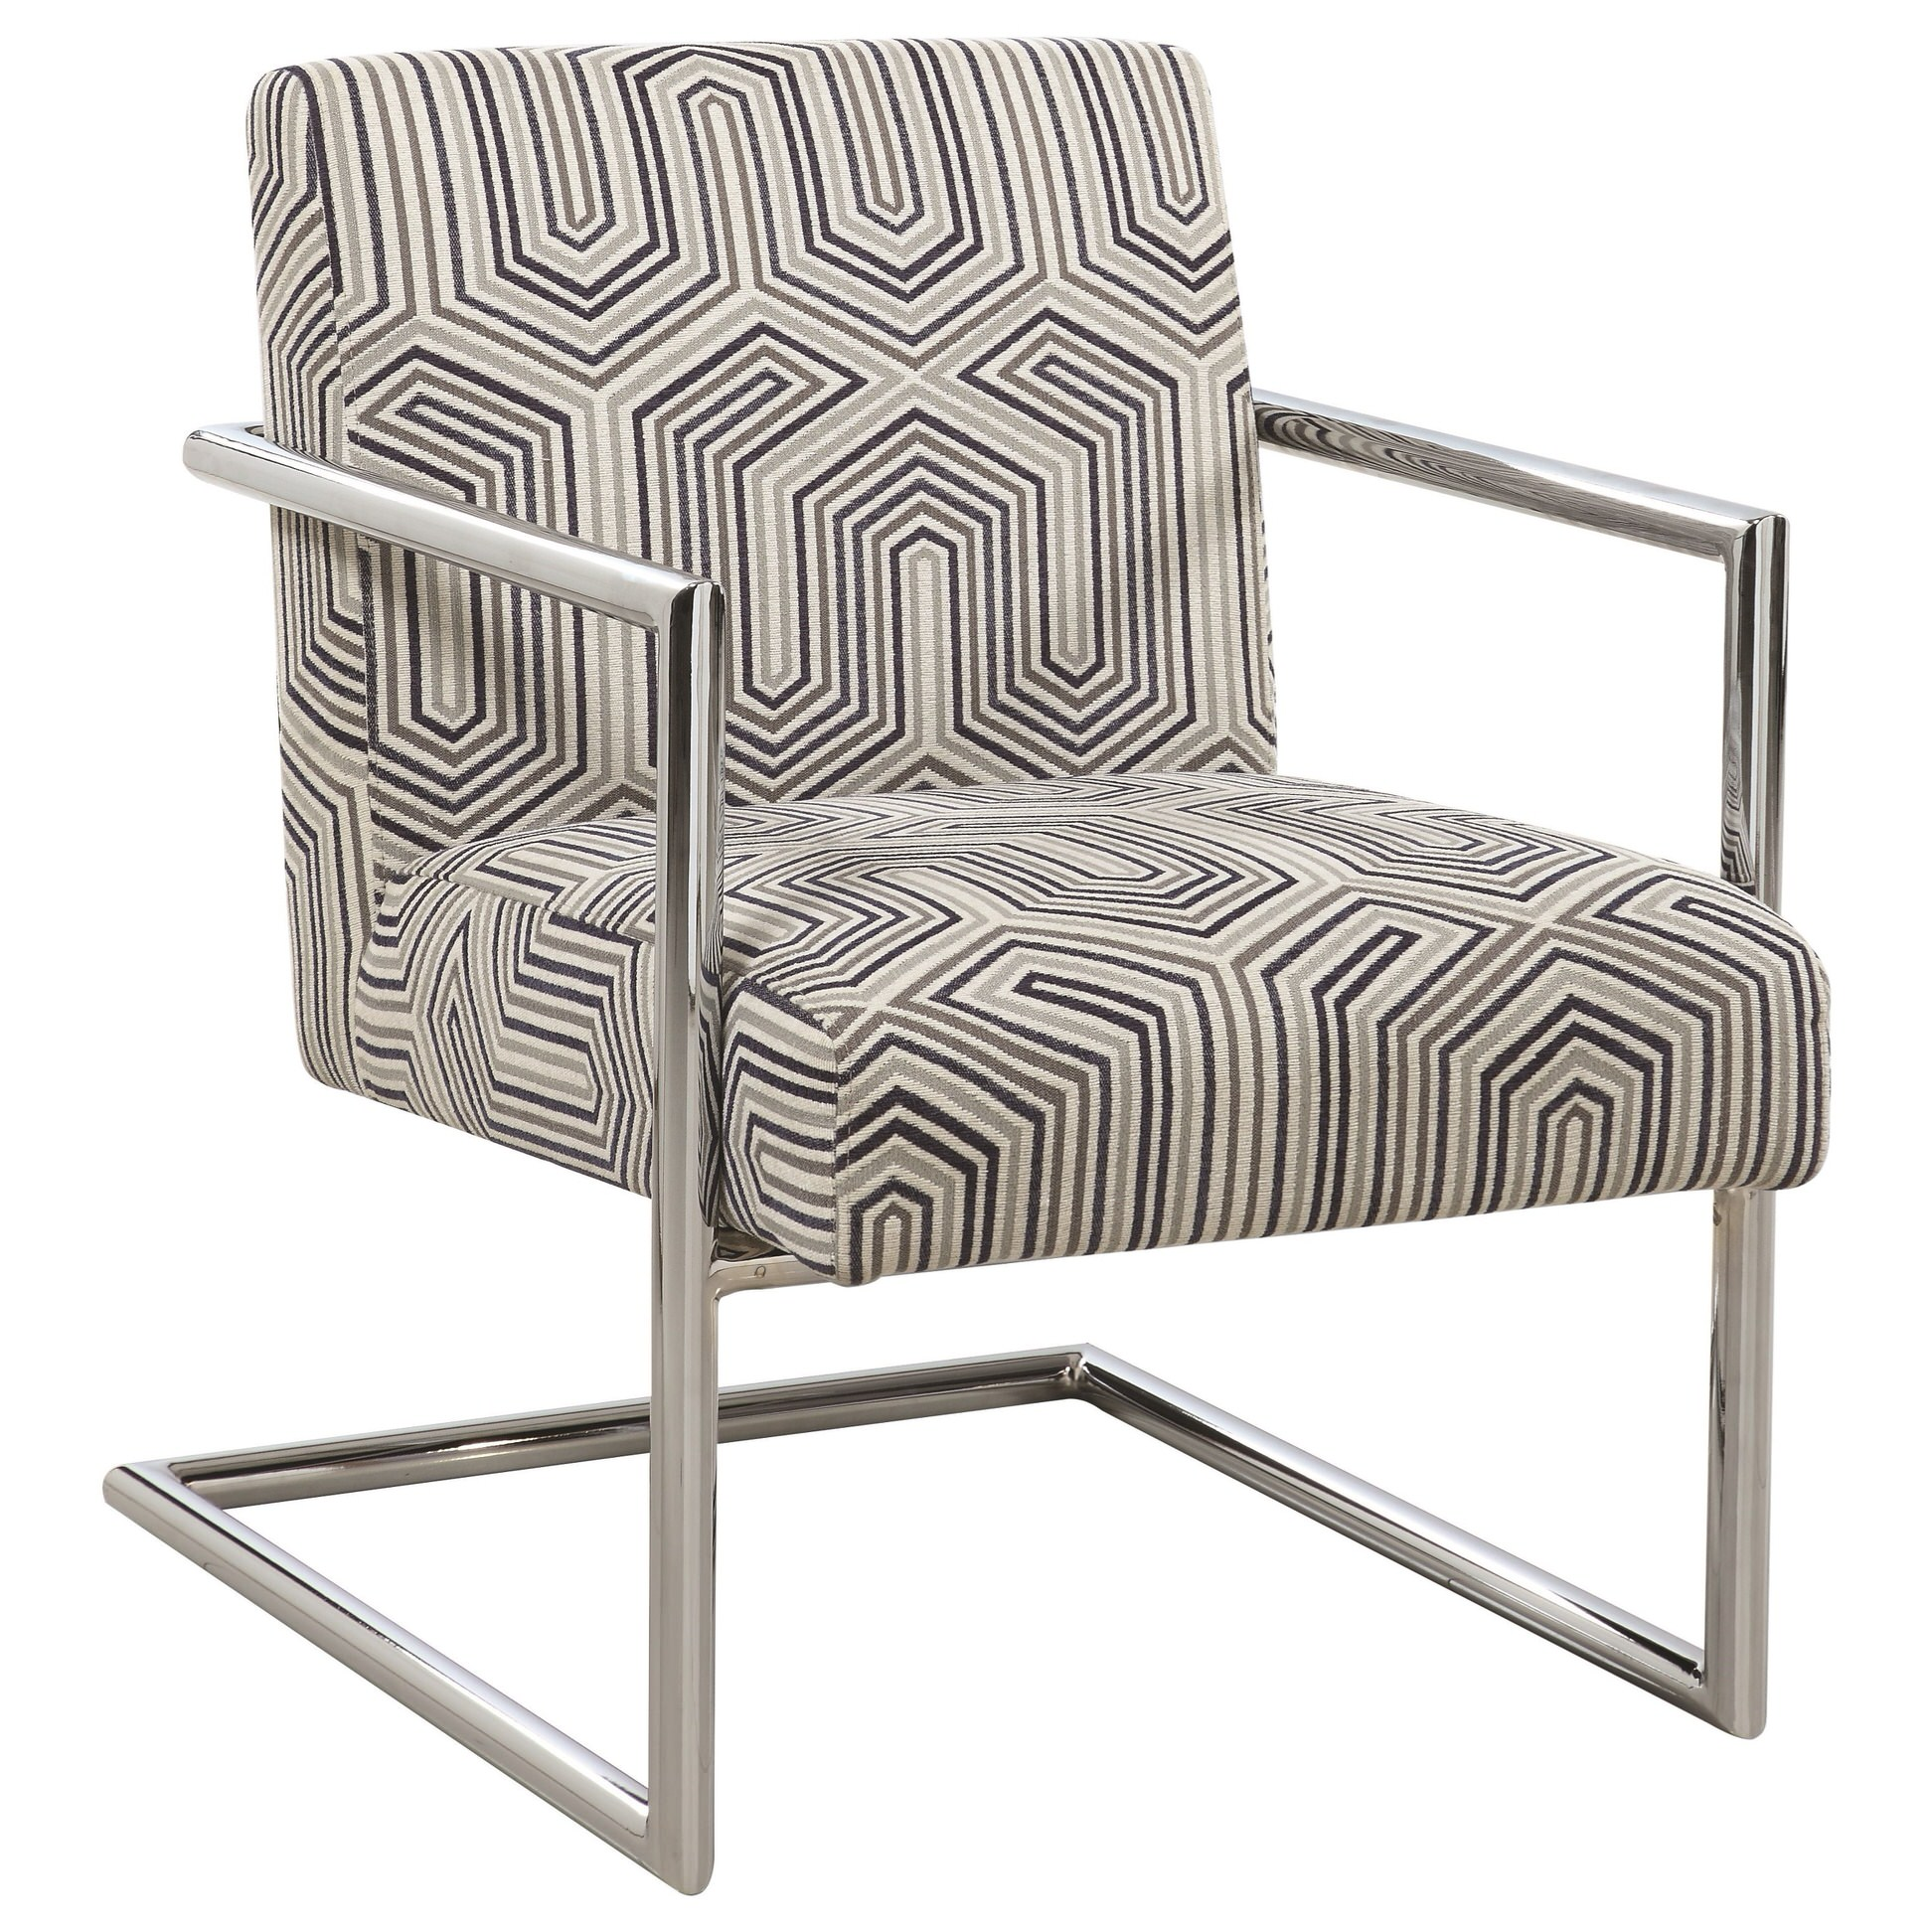 Brilliant 903402 Gray Blue Accent Chair By Scott Living Andrewgaddart Wooden Chair Designs For Living Room Andrewgaddartcom